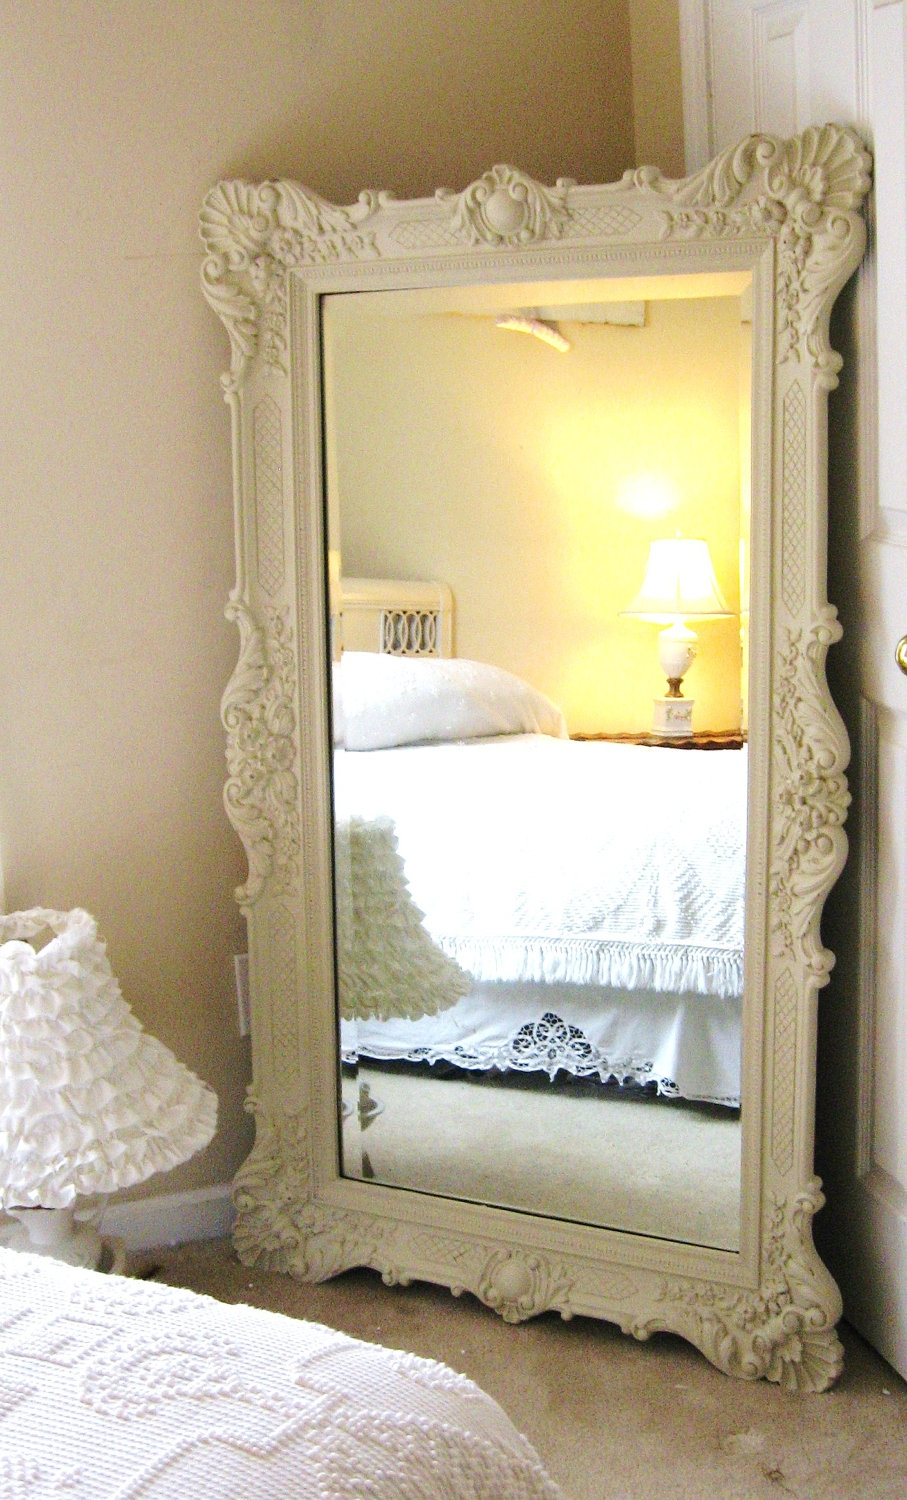 D R E S S I N G Mirror Vintage Leaning Mirror Floor Mirror With Antique French Floor Mirror (Image 8 of 15)